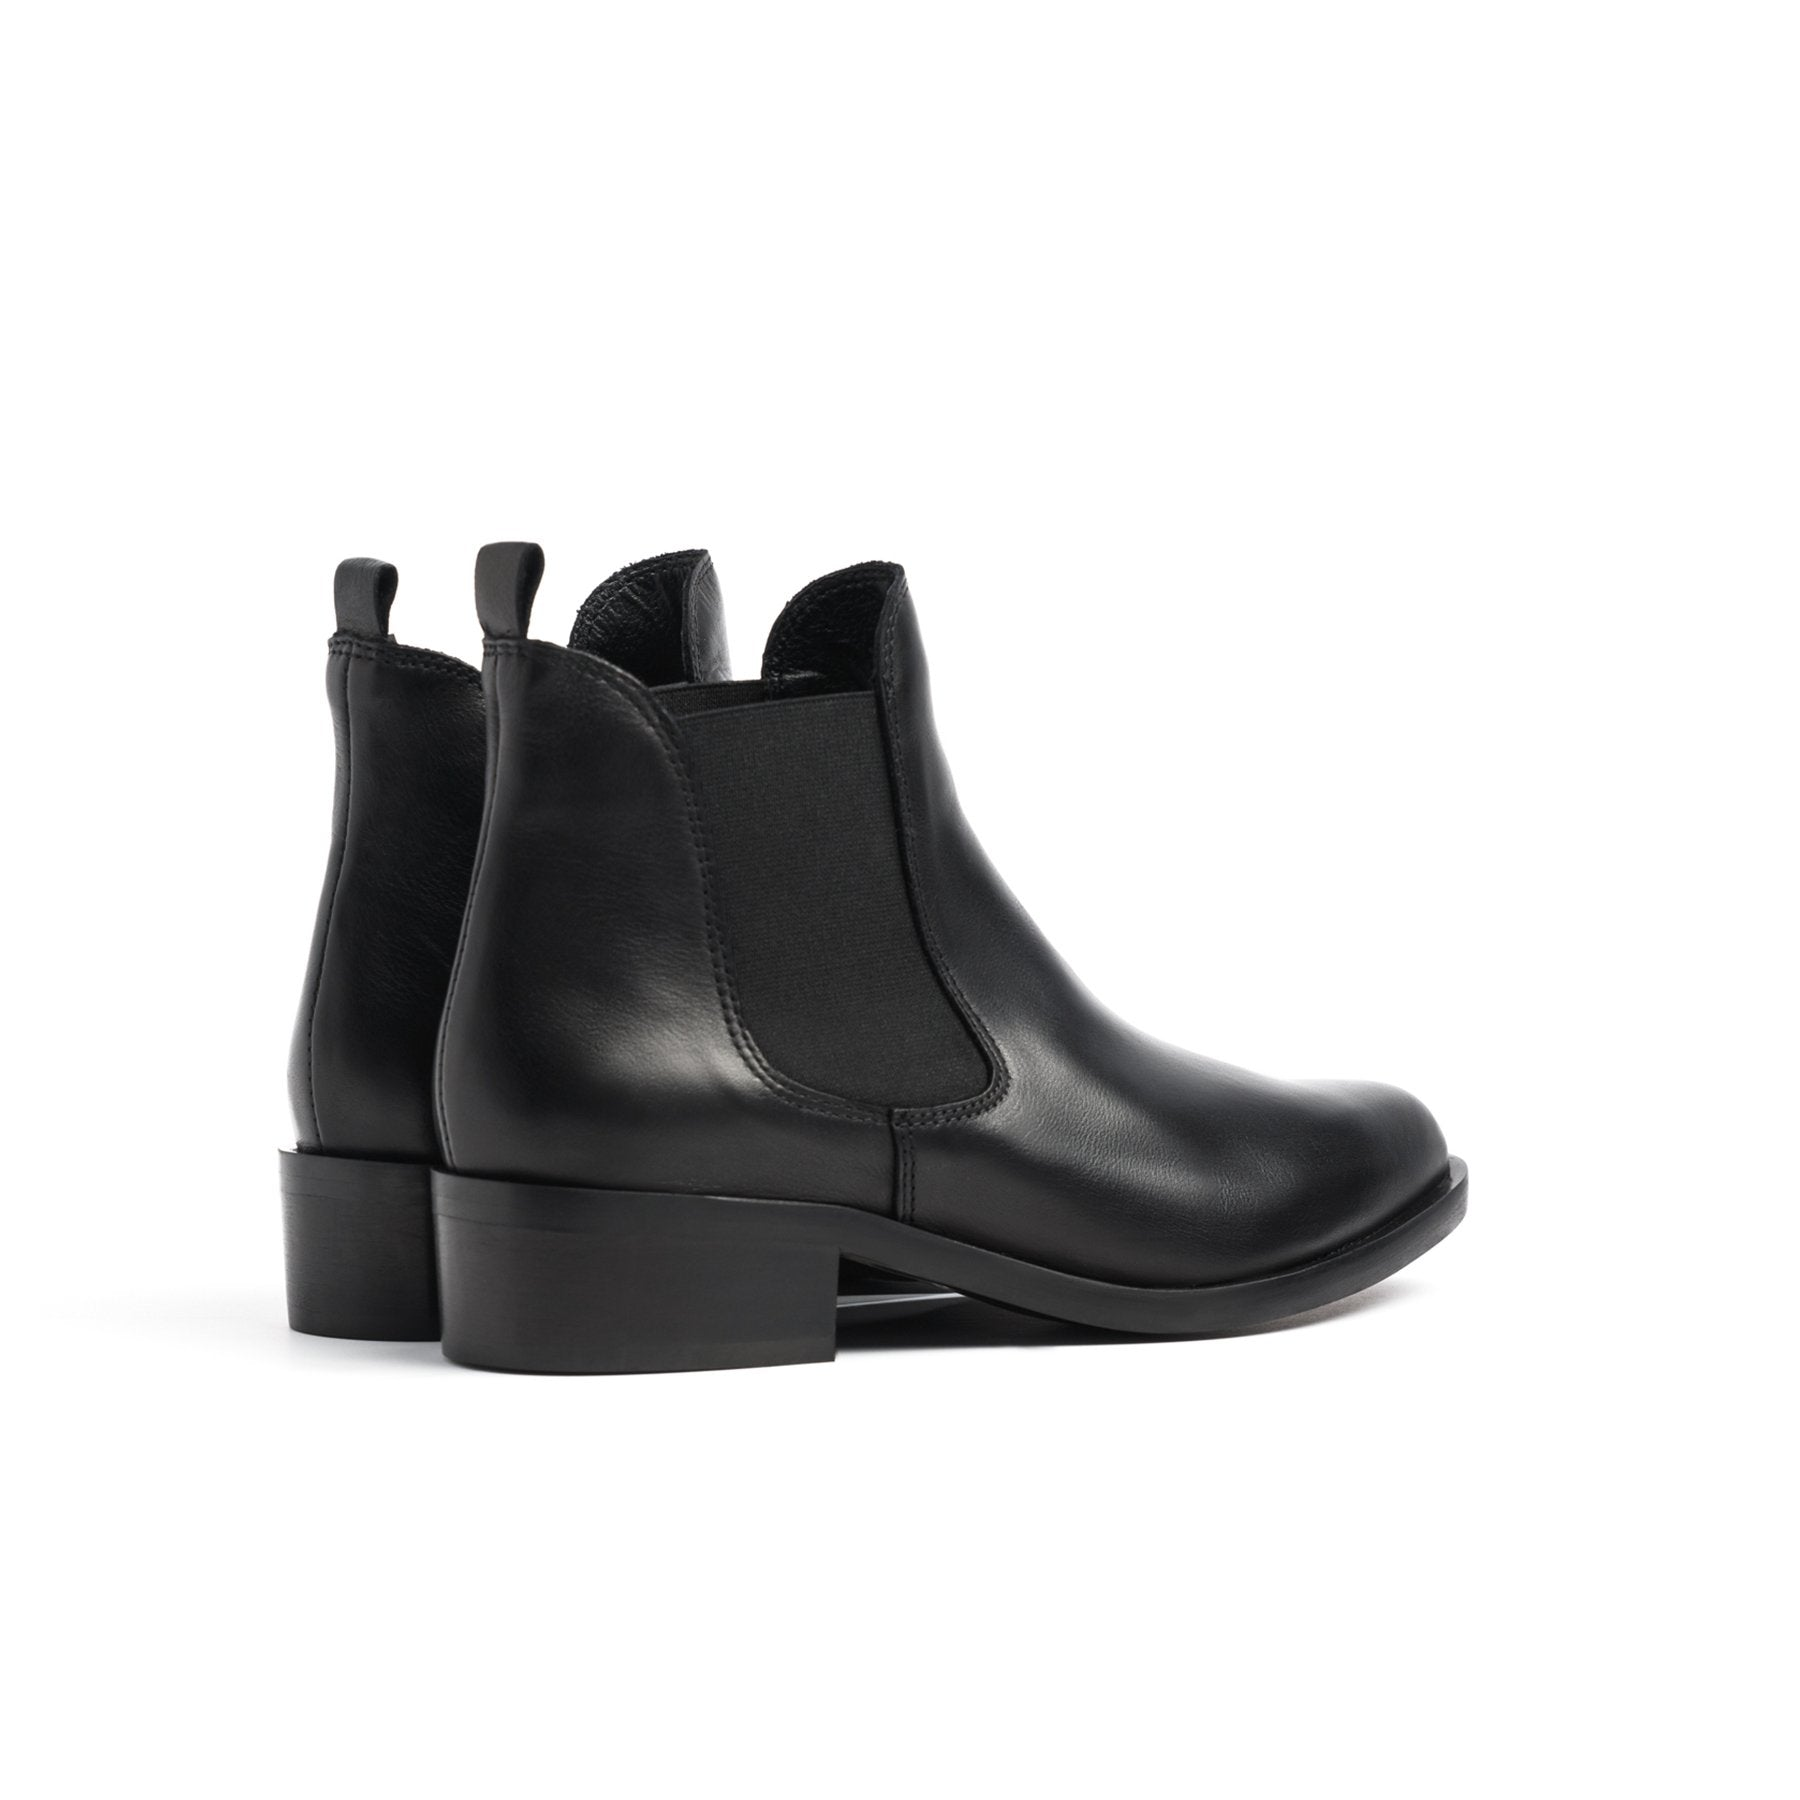 Teesha Black Leather Boots